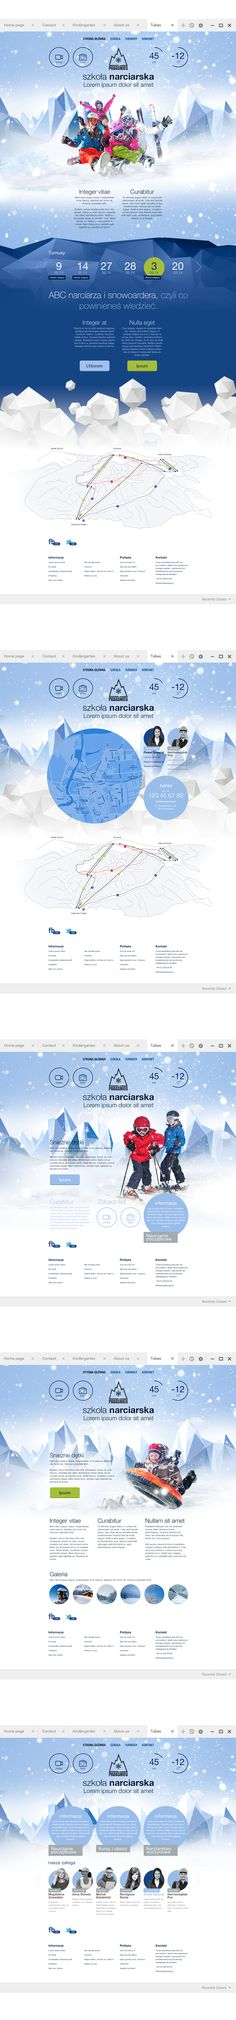 Cool Web Design on the Internet, PADASNIEG. #webdesign #webdevelopment #website @ http://www.pinterest.com/alfredchong/web-design/